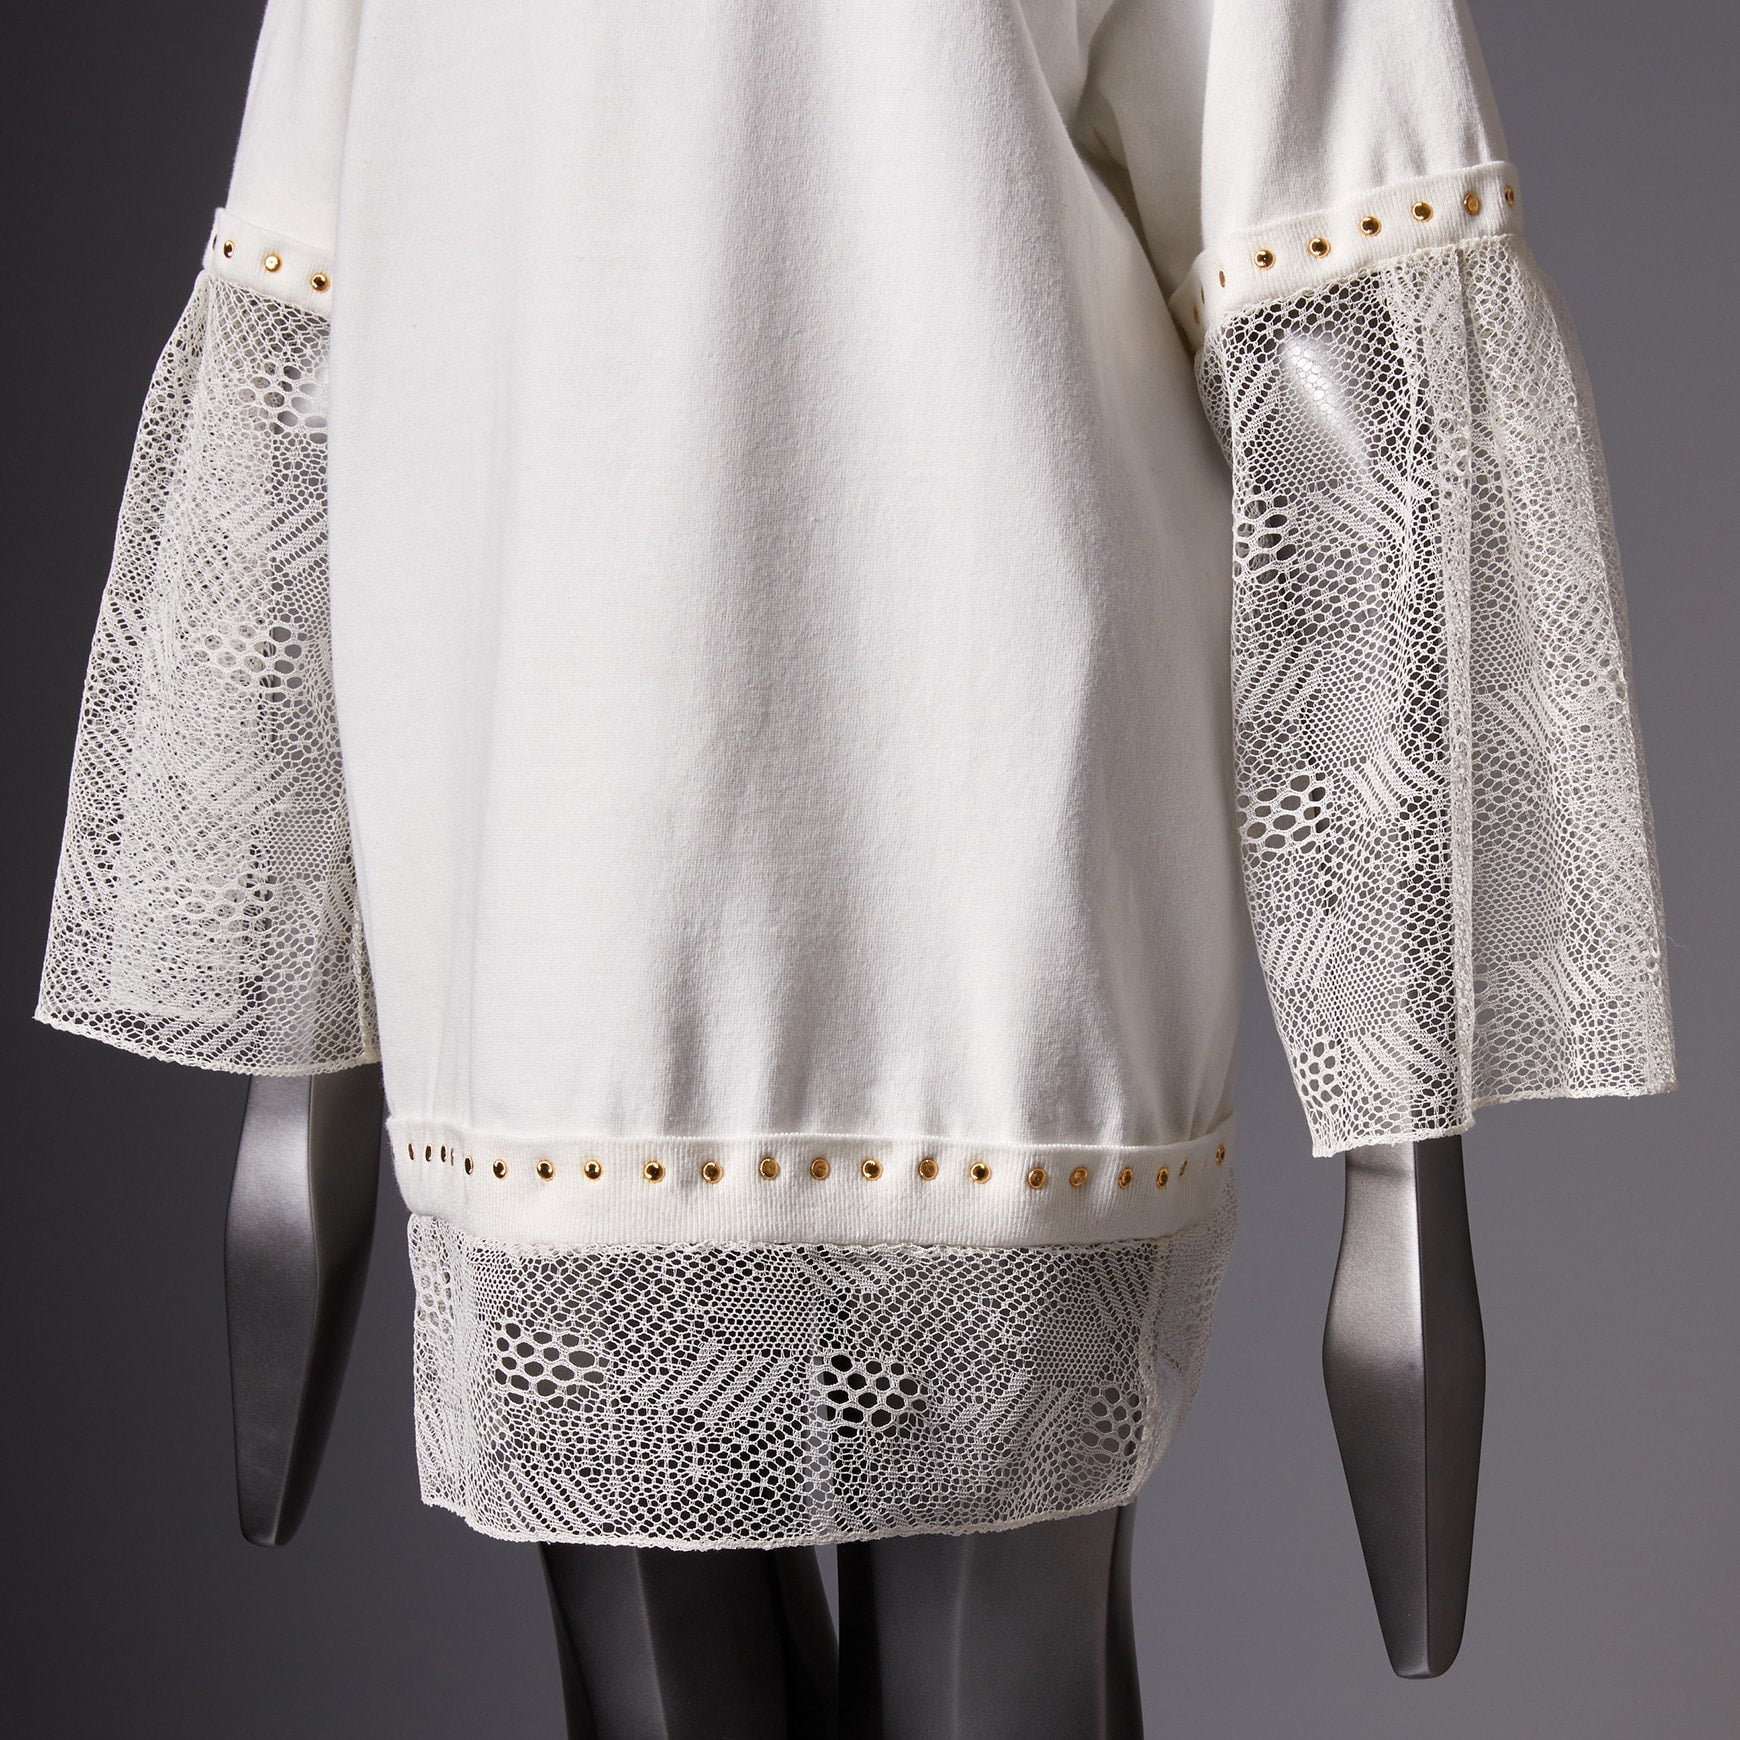 TYPE-1 Knit Organic Cotton Half Sleeves with French Lace Sleeve Parts Long (White Cells)